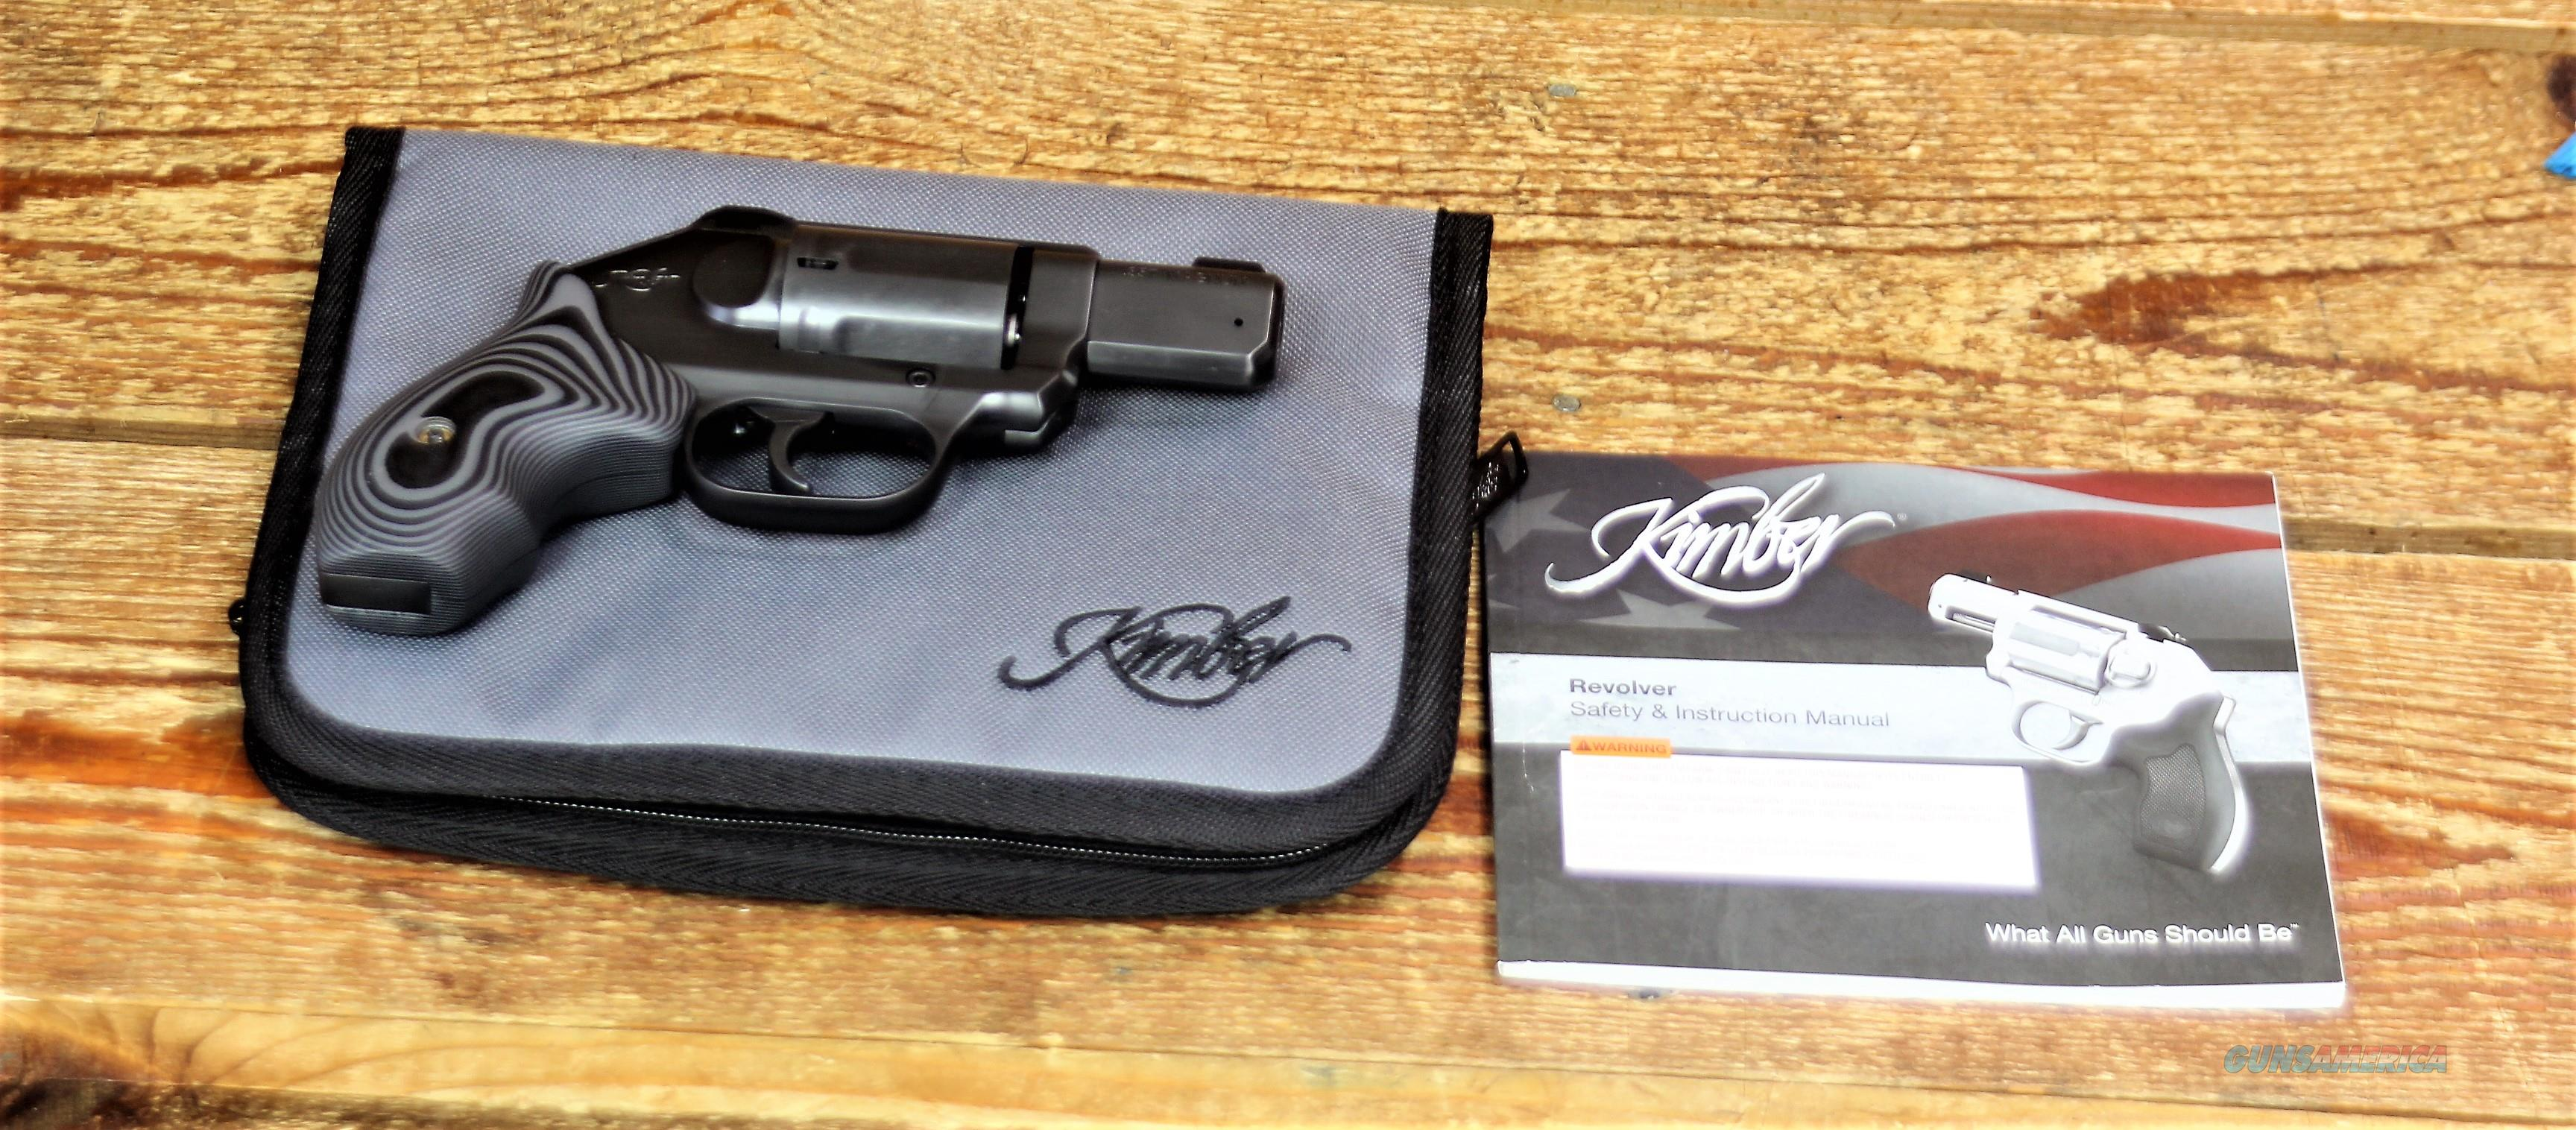 EASY PAY $93 DOWN LAYAWAY  MONTHLY PAYMENTS Kimber K9 Easily Concealed & Carried W Knock Down Firepower   Tritium 3 Dot night sights  Stainless Steel POCKET REVOLVER   357 MAGNUM DC Blk Gry 357 MAG  Black DLC Coated KIM-3400012  Guns > Pistols > Kimber of America Pistols > Revolvers